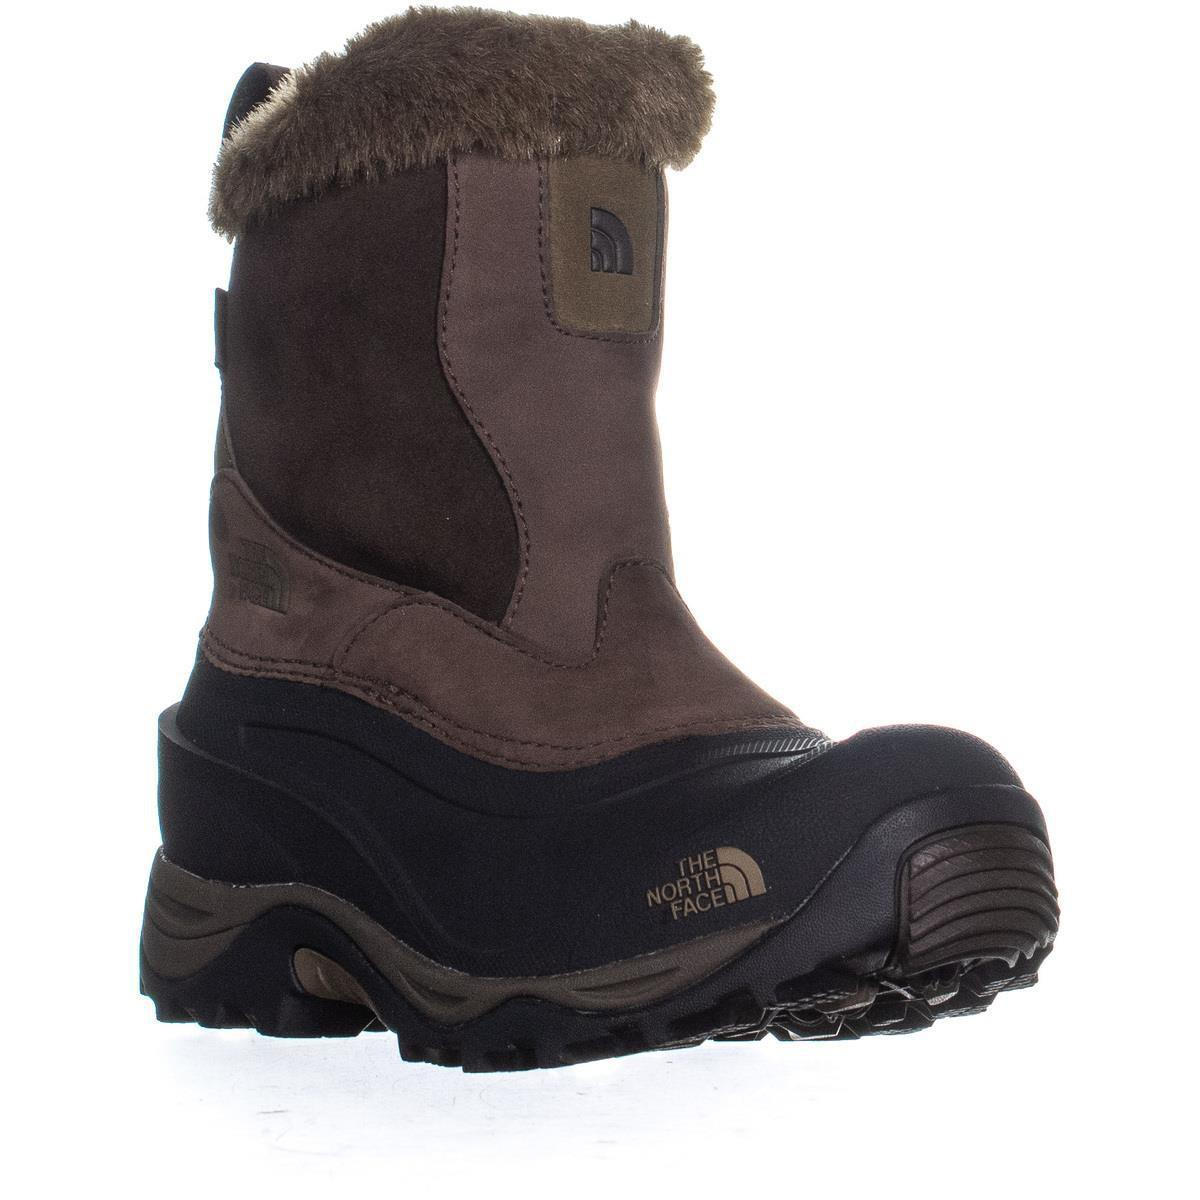 103121f52 The North Face Greenland Zip Ii Mid Calf Boots in Brown - Lyst